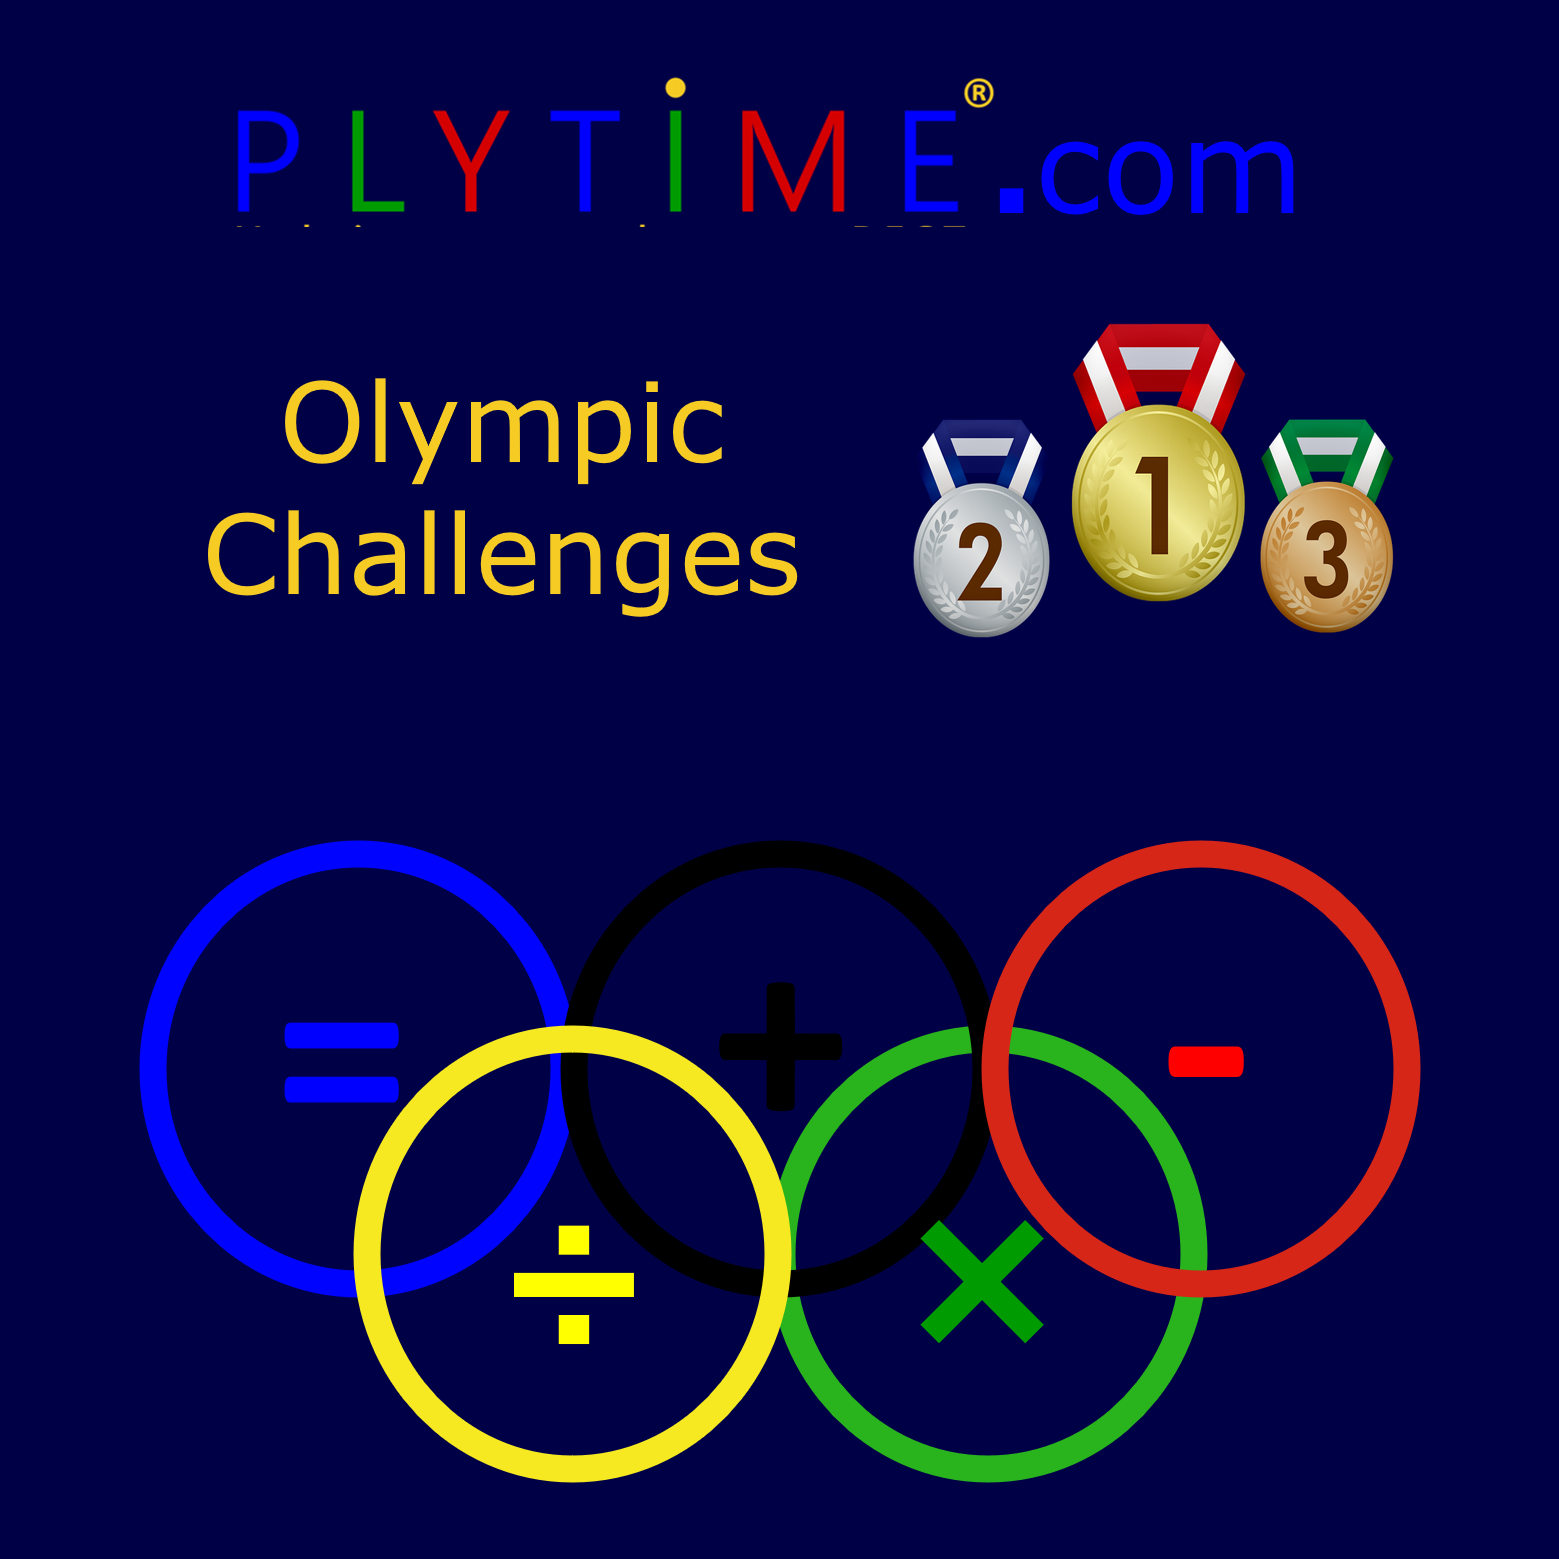 17 PLYTIME Olympic Challenges.